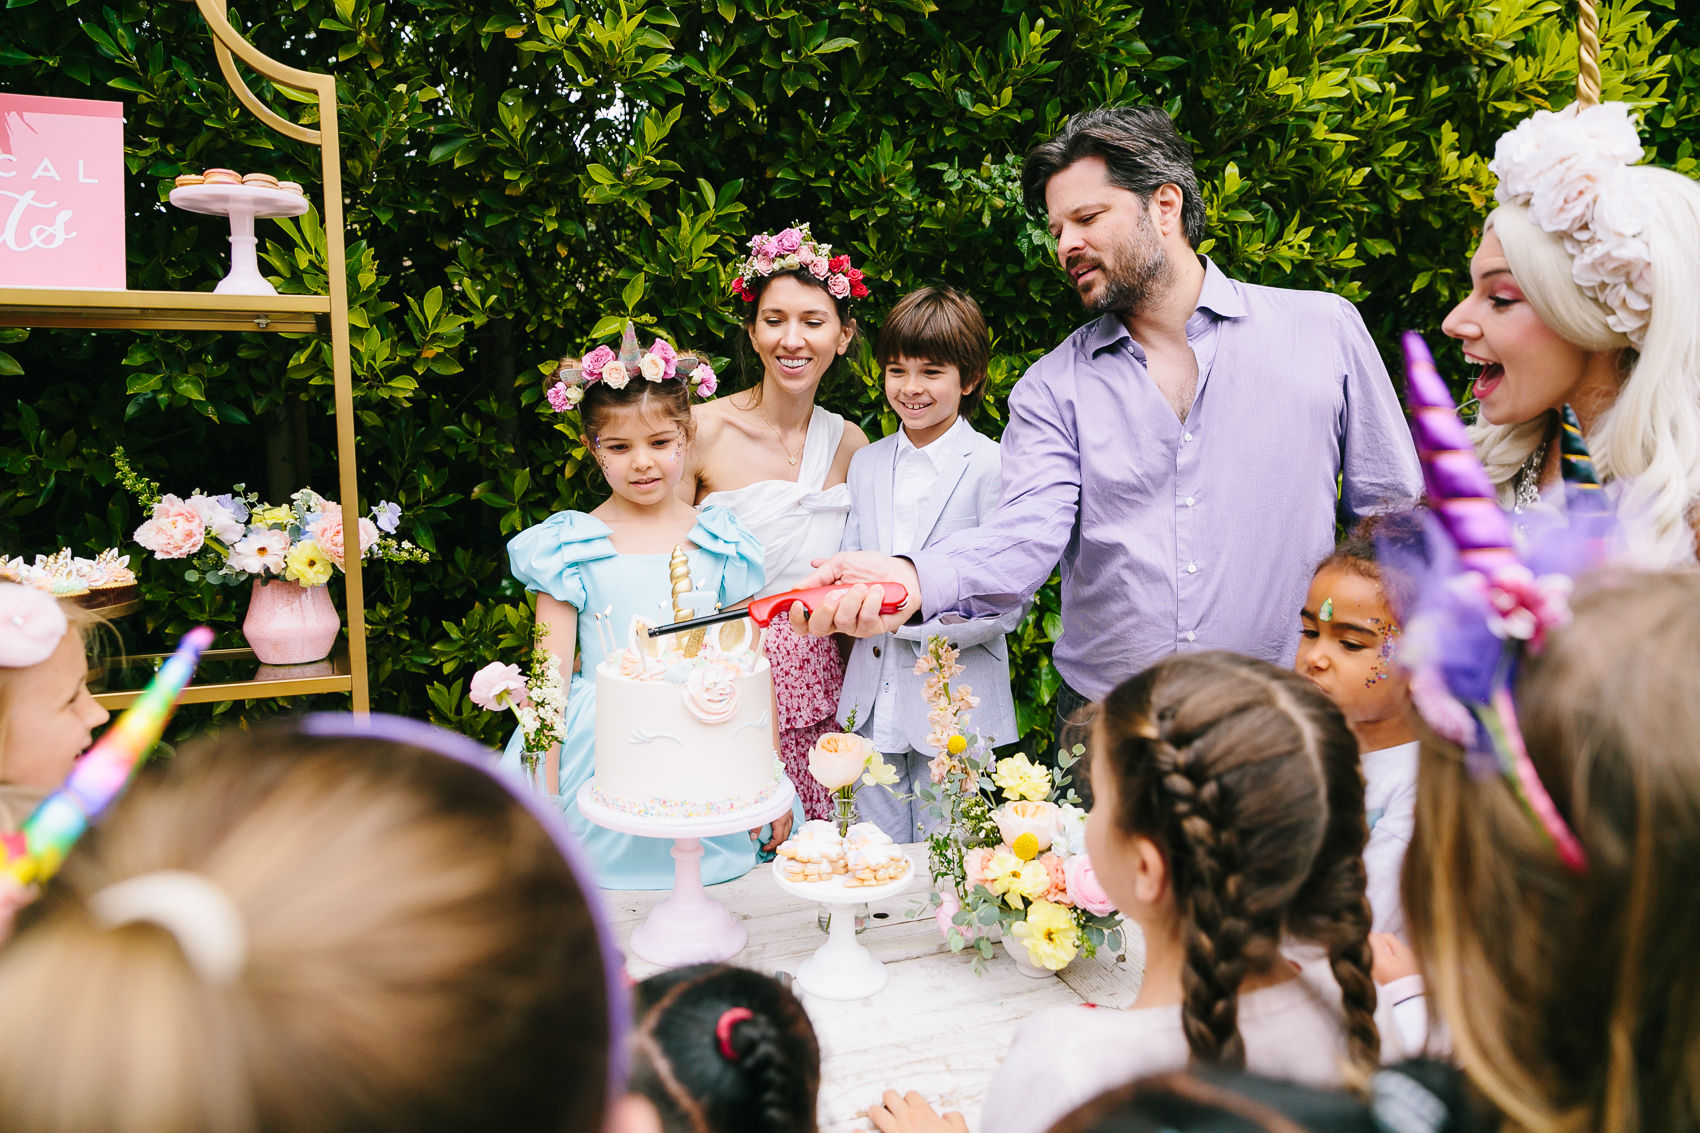 Los_Angeles_Family_Photographer_Luxury_Childrens_Party_Beverly_Hills_Unicorn_Birthday_Party-1356.jpg